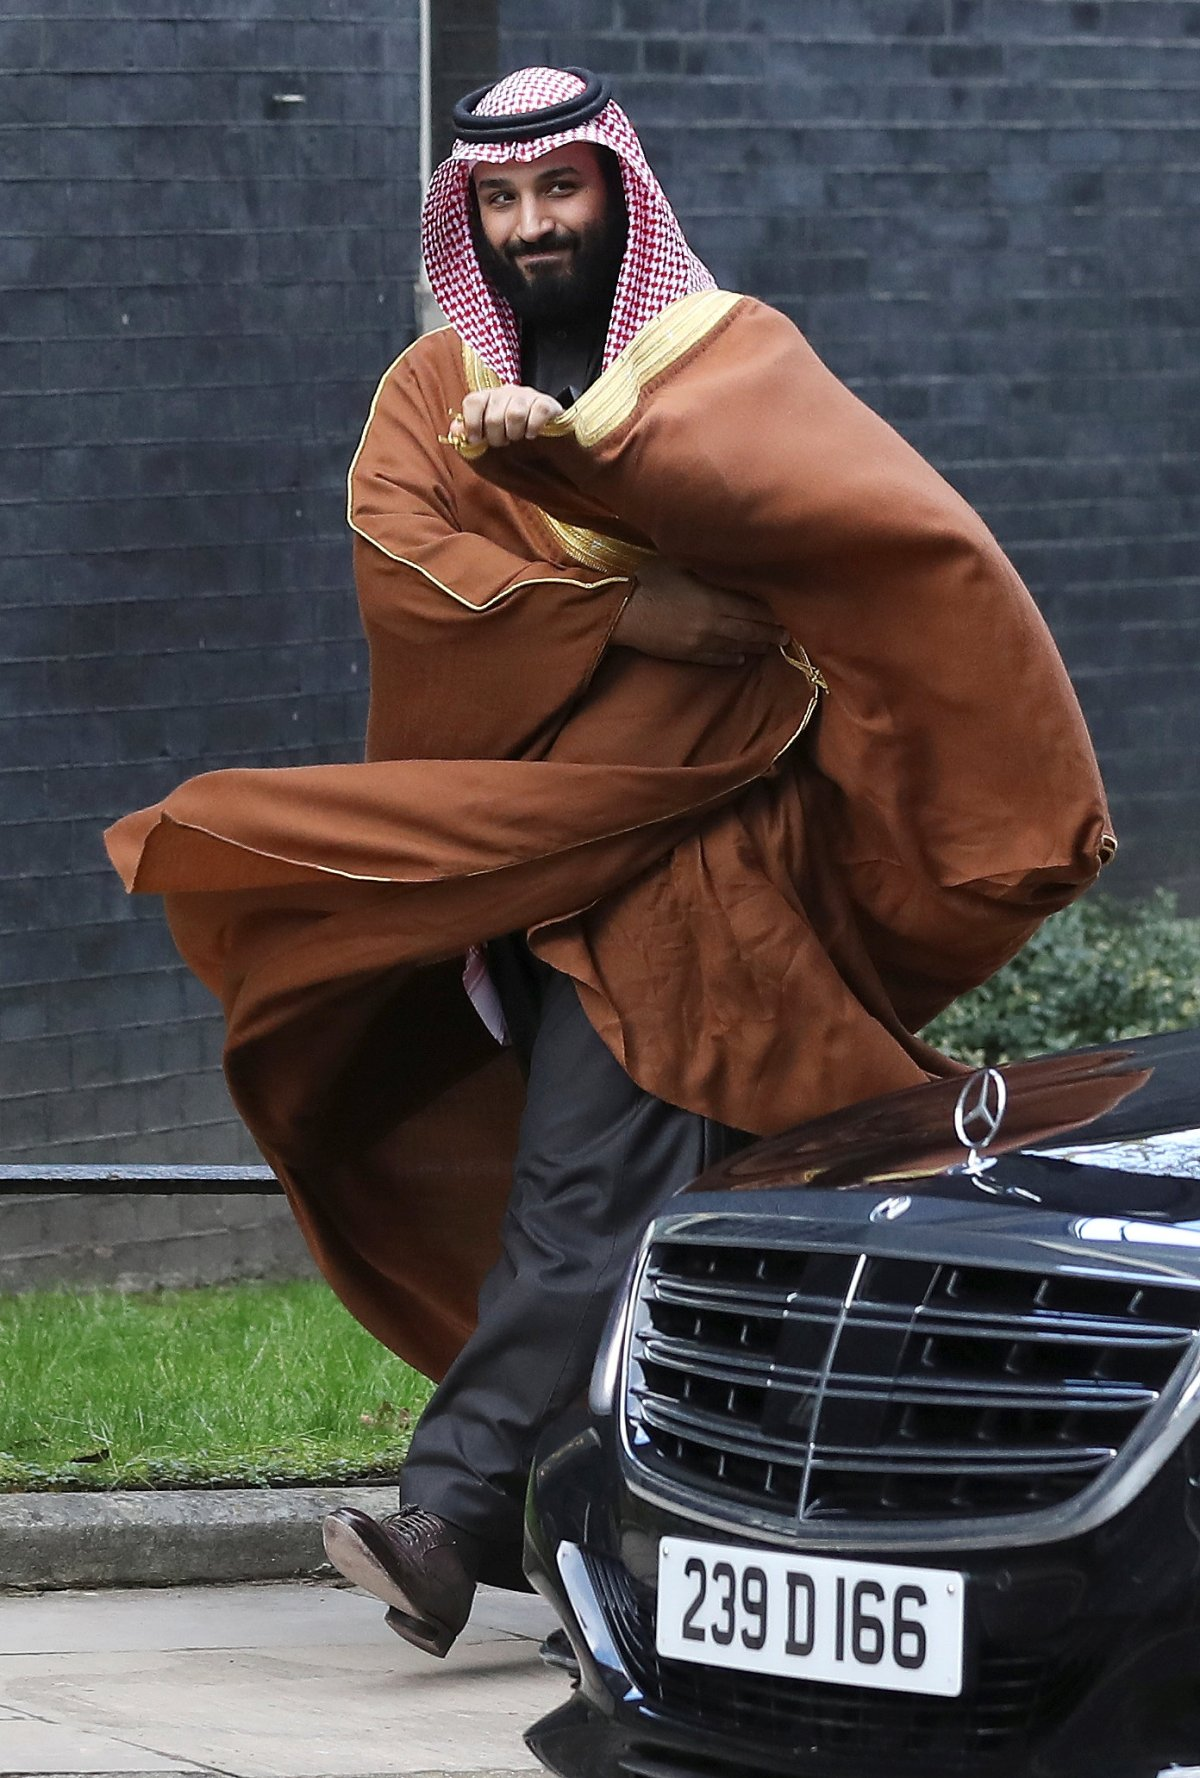 Mohammad bin Salman arrives in Downing Street, London, to meet Britain's Prime Minister, Theresa May, on March 7, 2018. Photo: Reuters / Simon Dawson